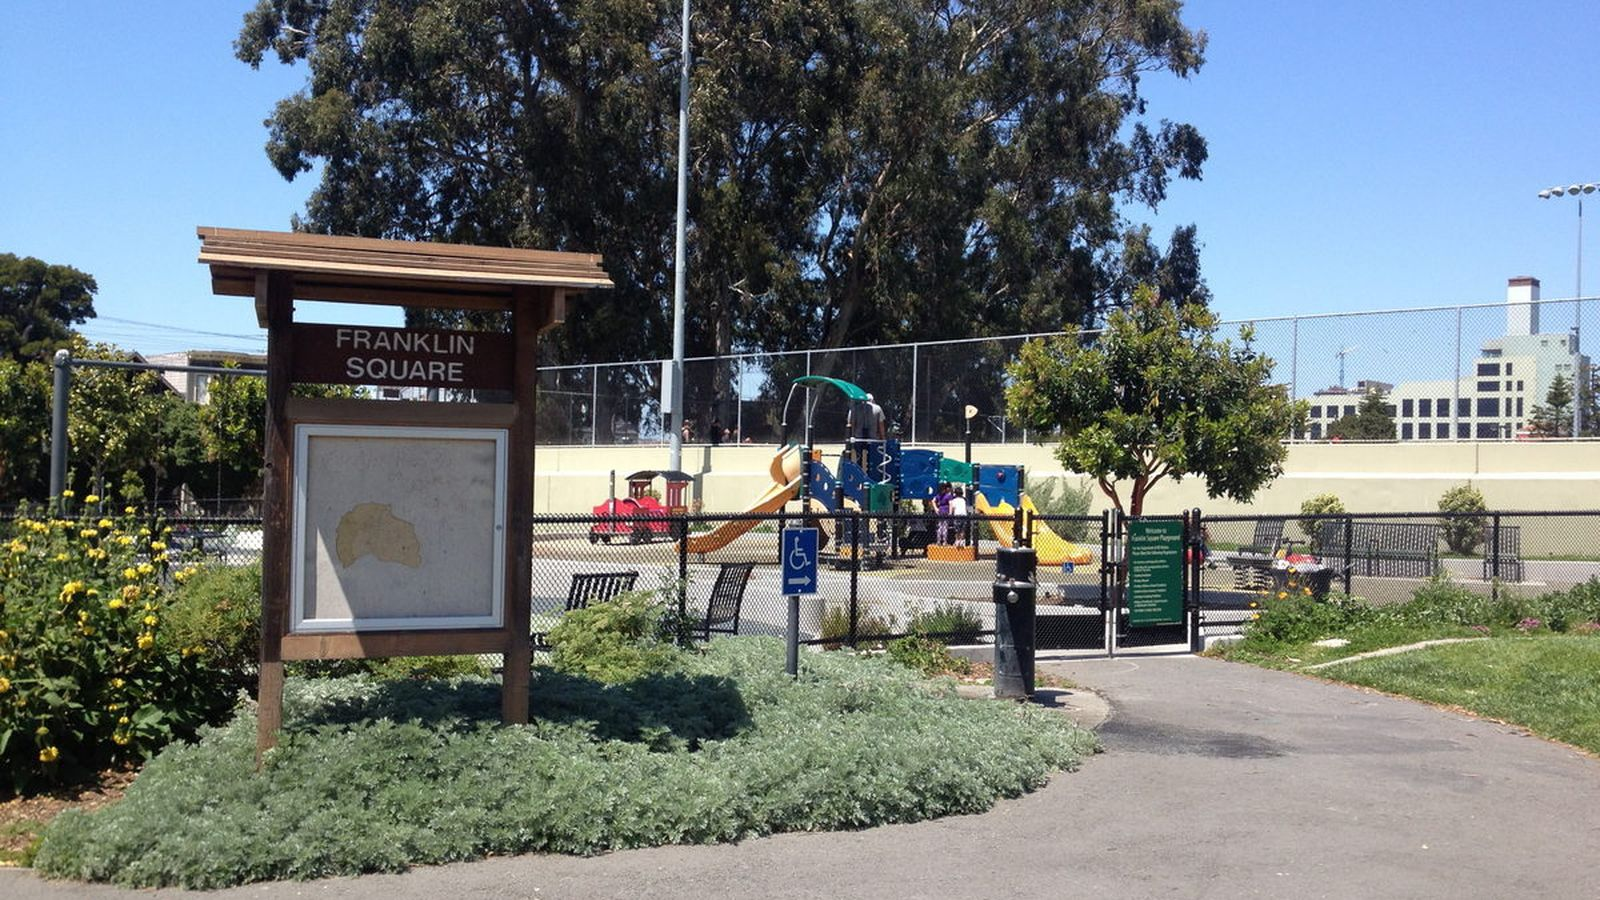 Franklin Square is a bustling urban park that boasts a lighted turf soccer field, large modern playground and picnic areas.